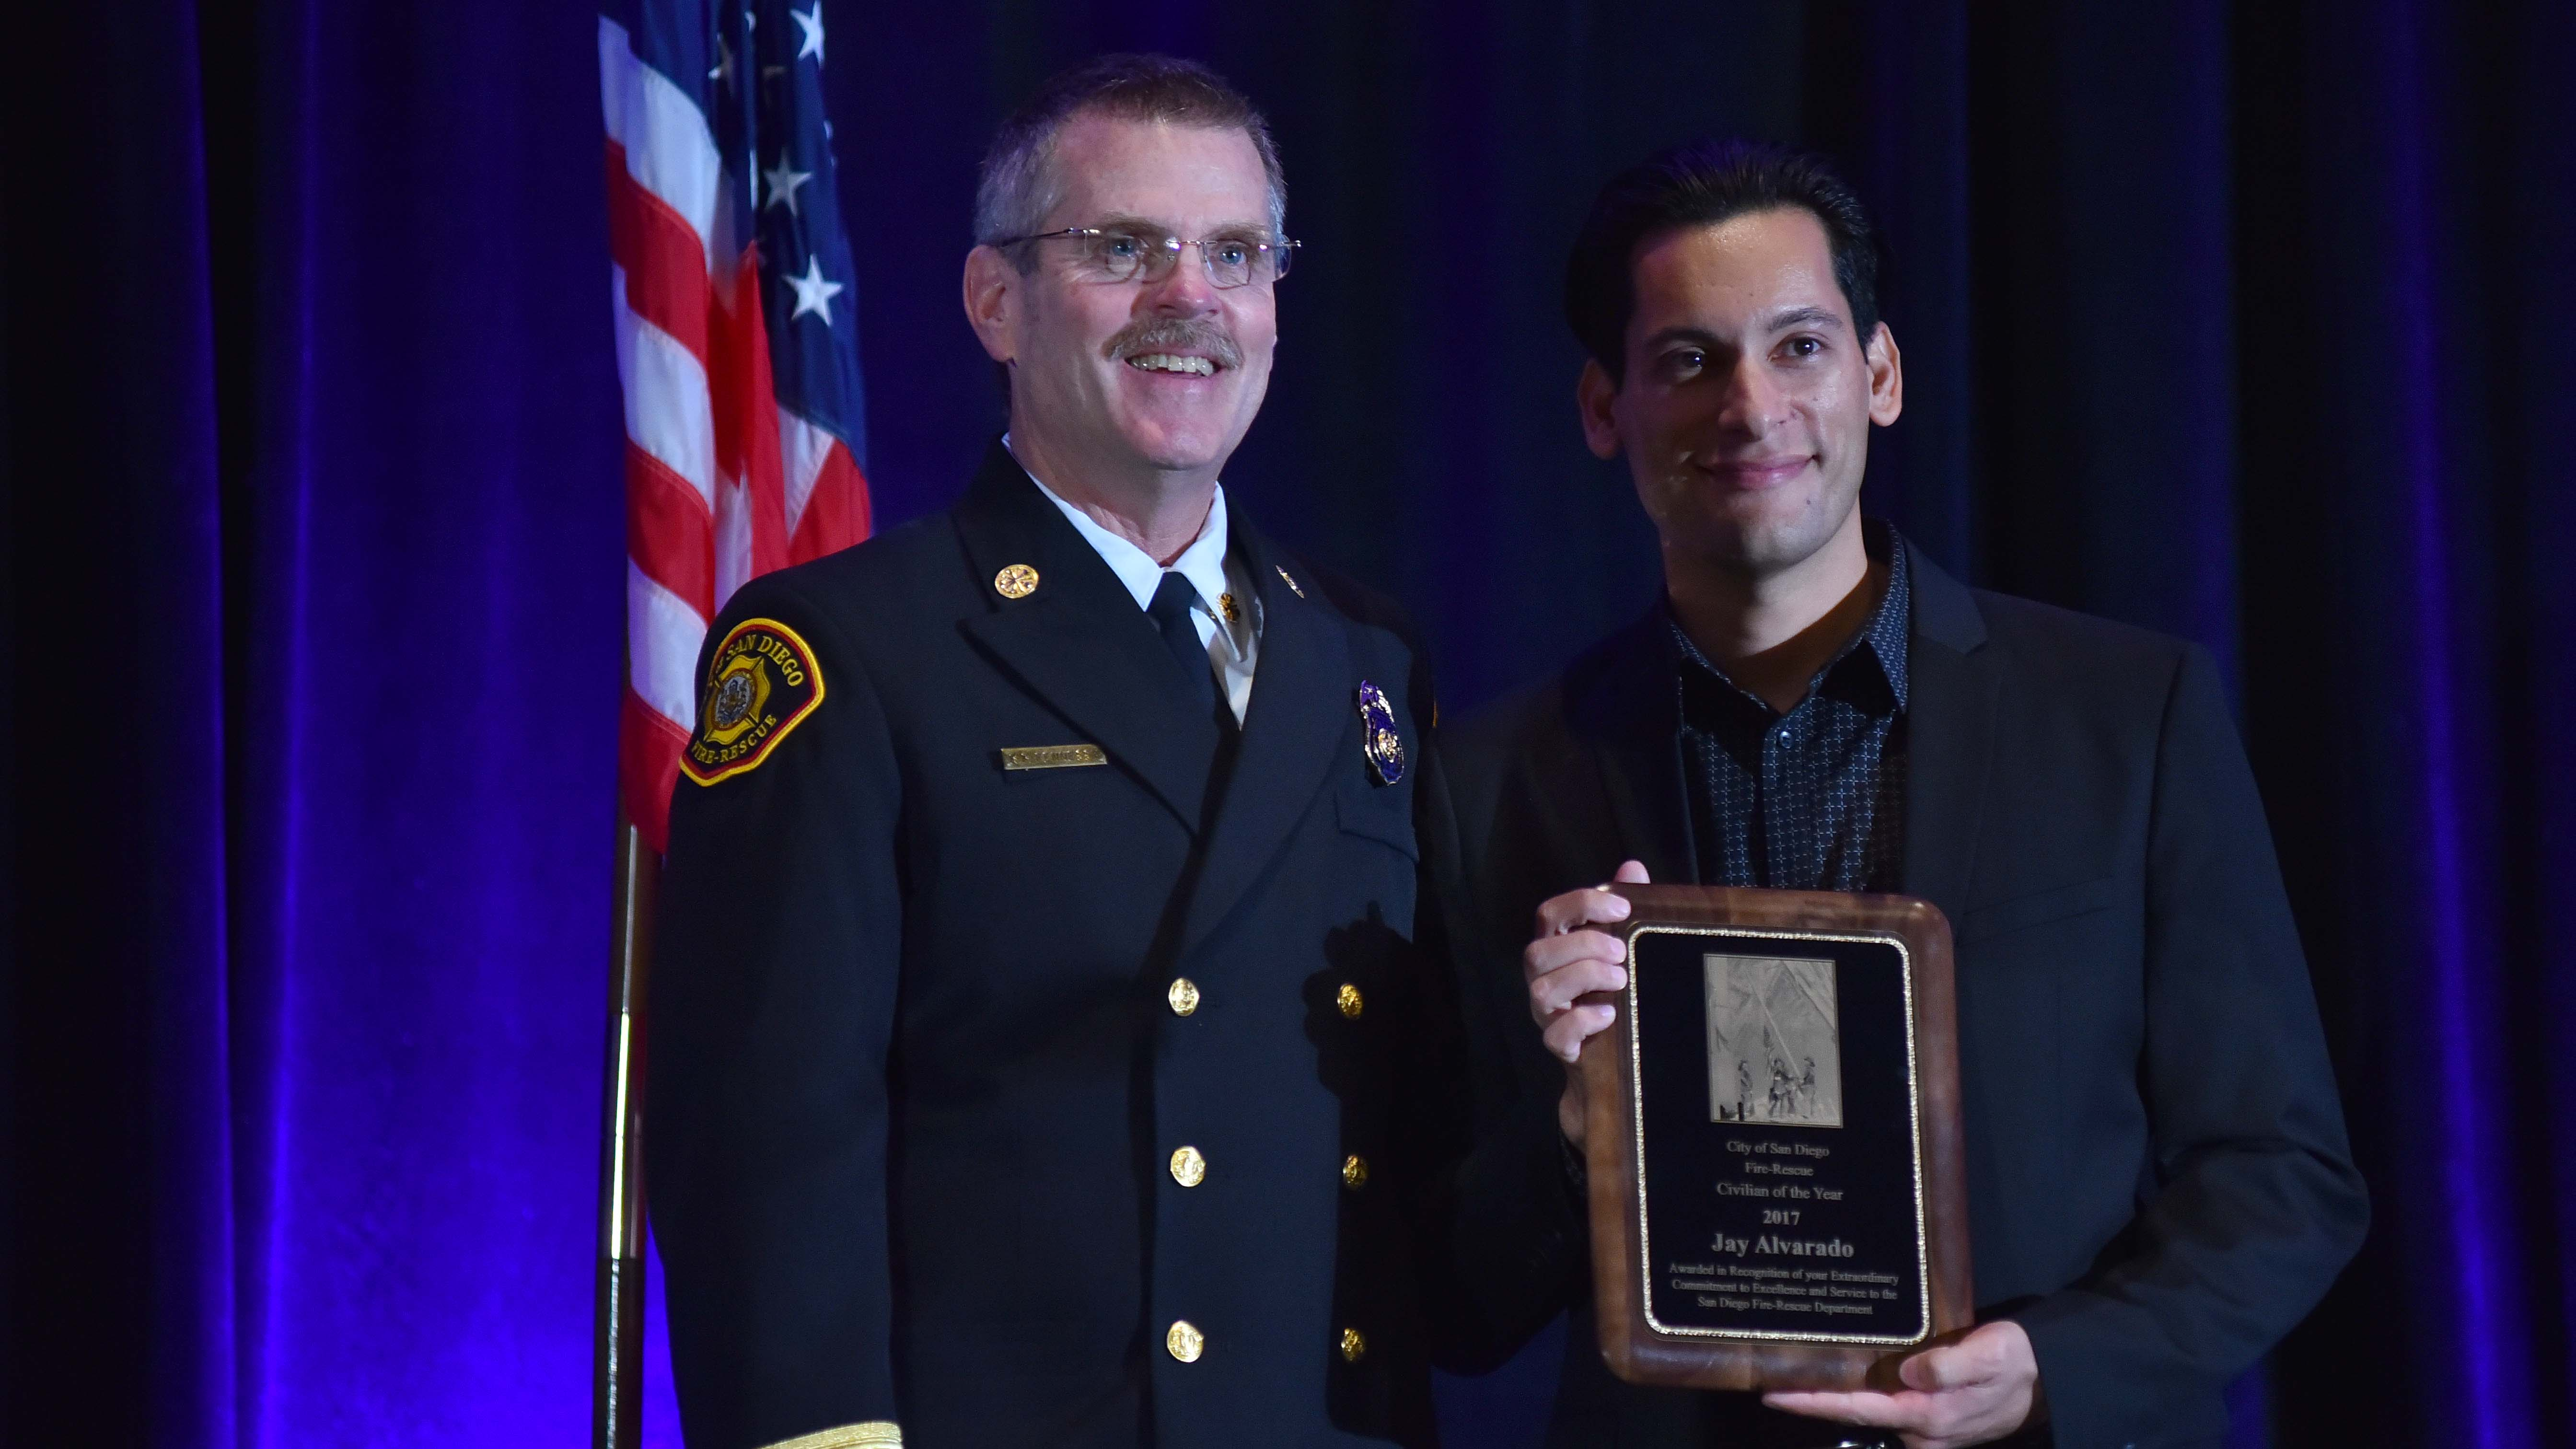 San Diego Fire Chief Brian Fennessy poses with Jay Alvarado, the Civilian of the Year